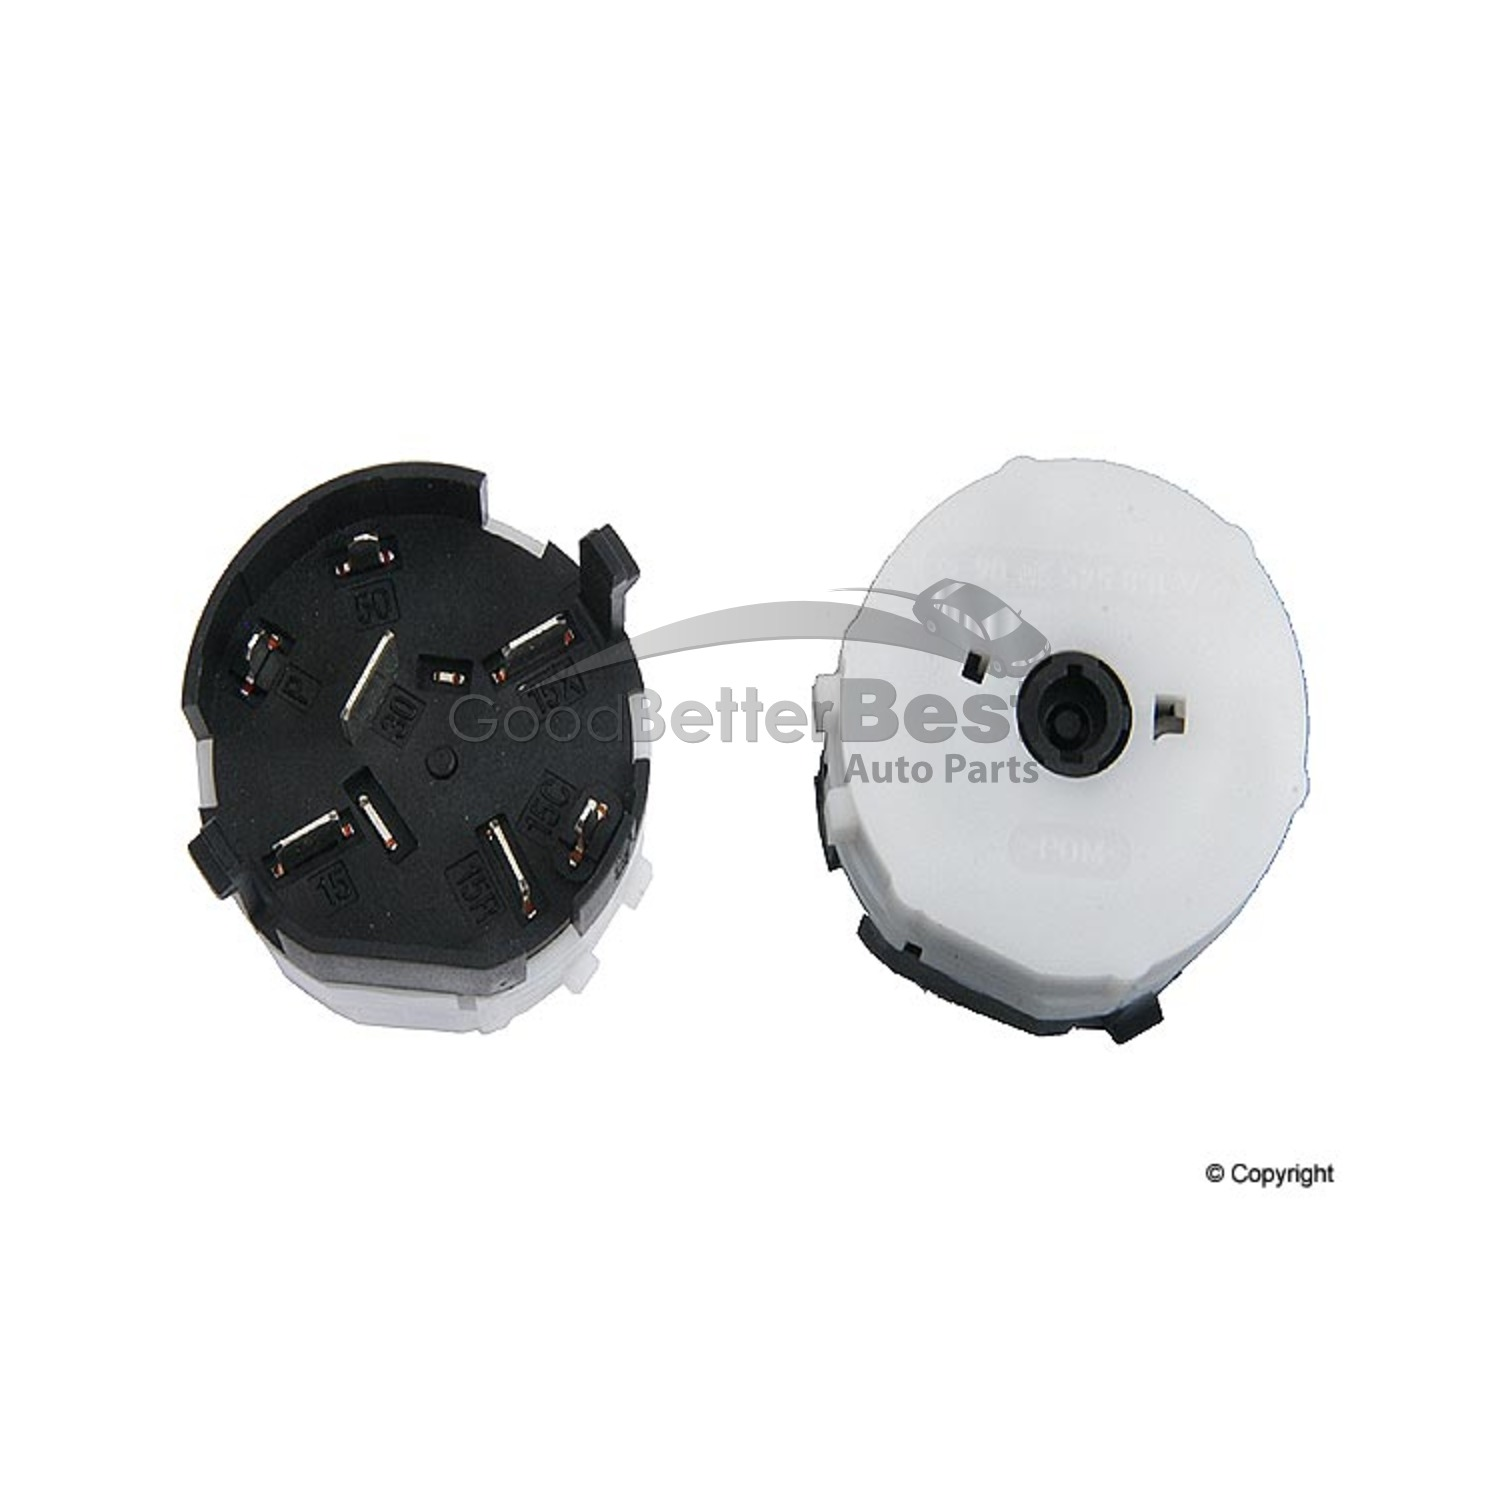 One New Genuine Ignition Switch 1685451004 for Mercedes MB